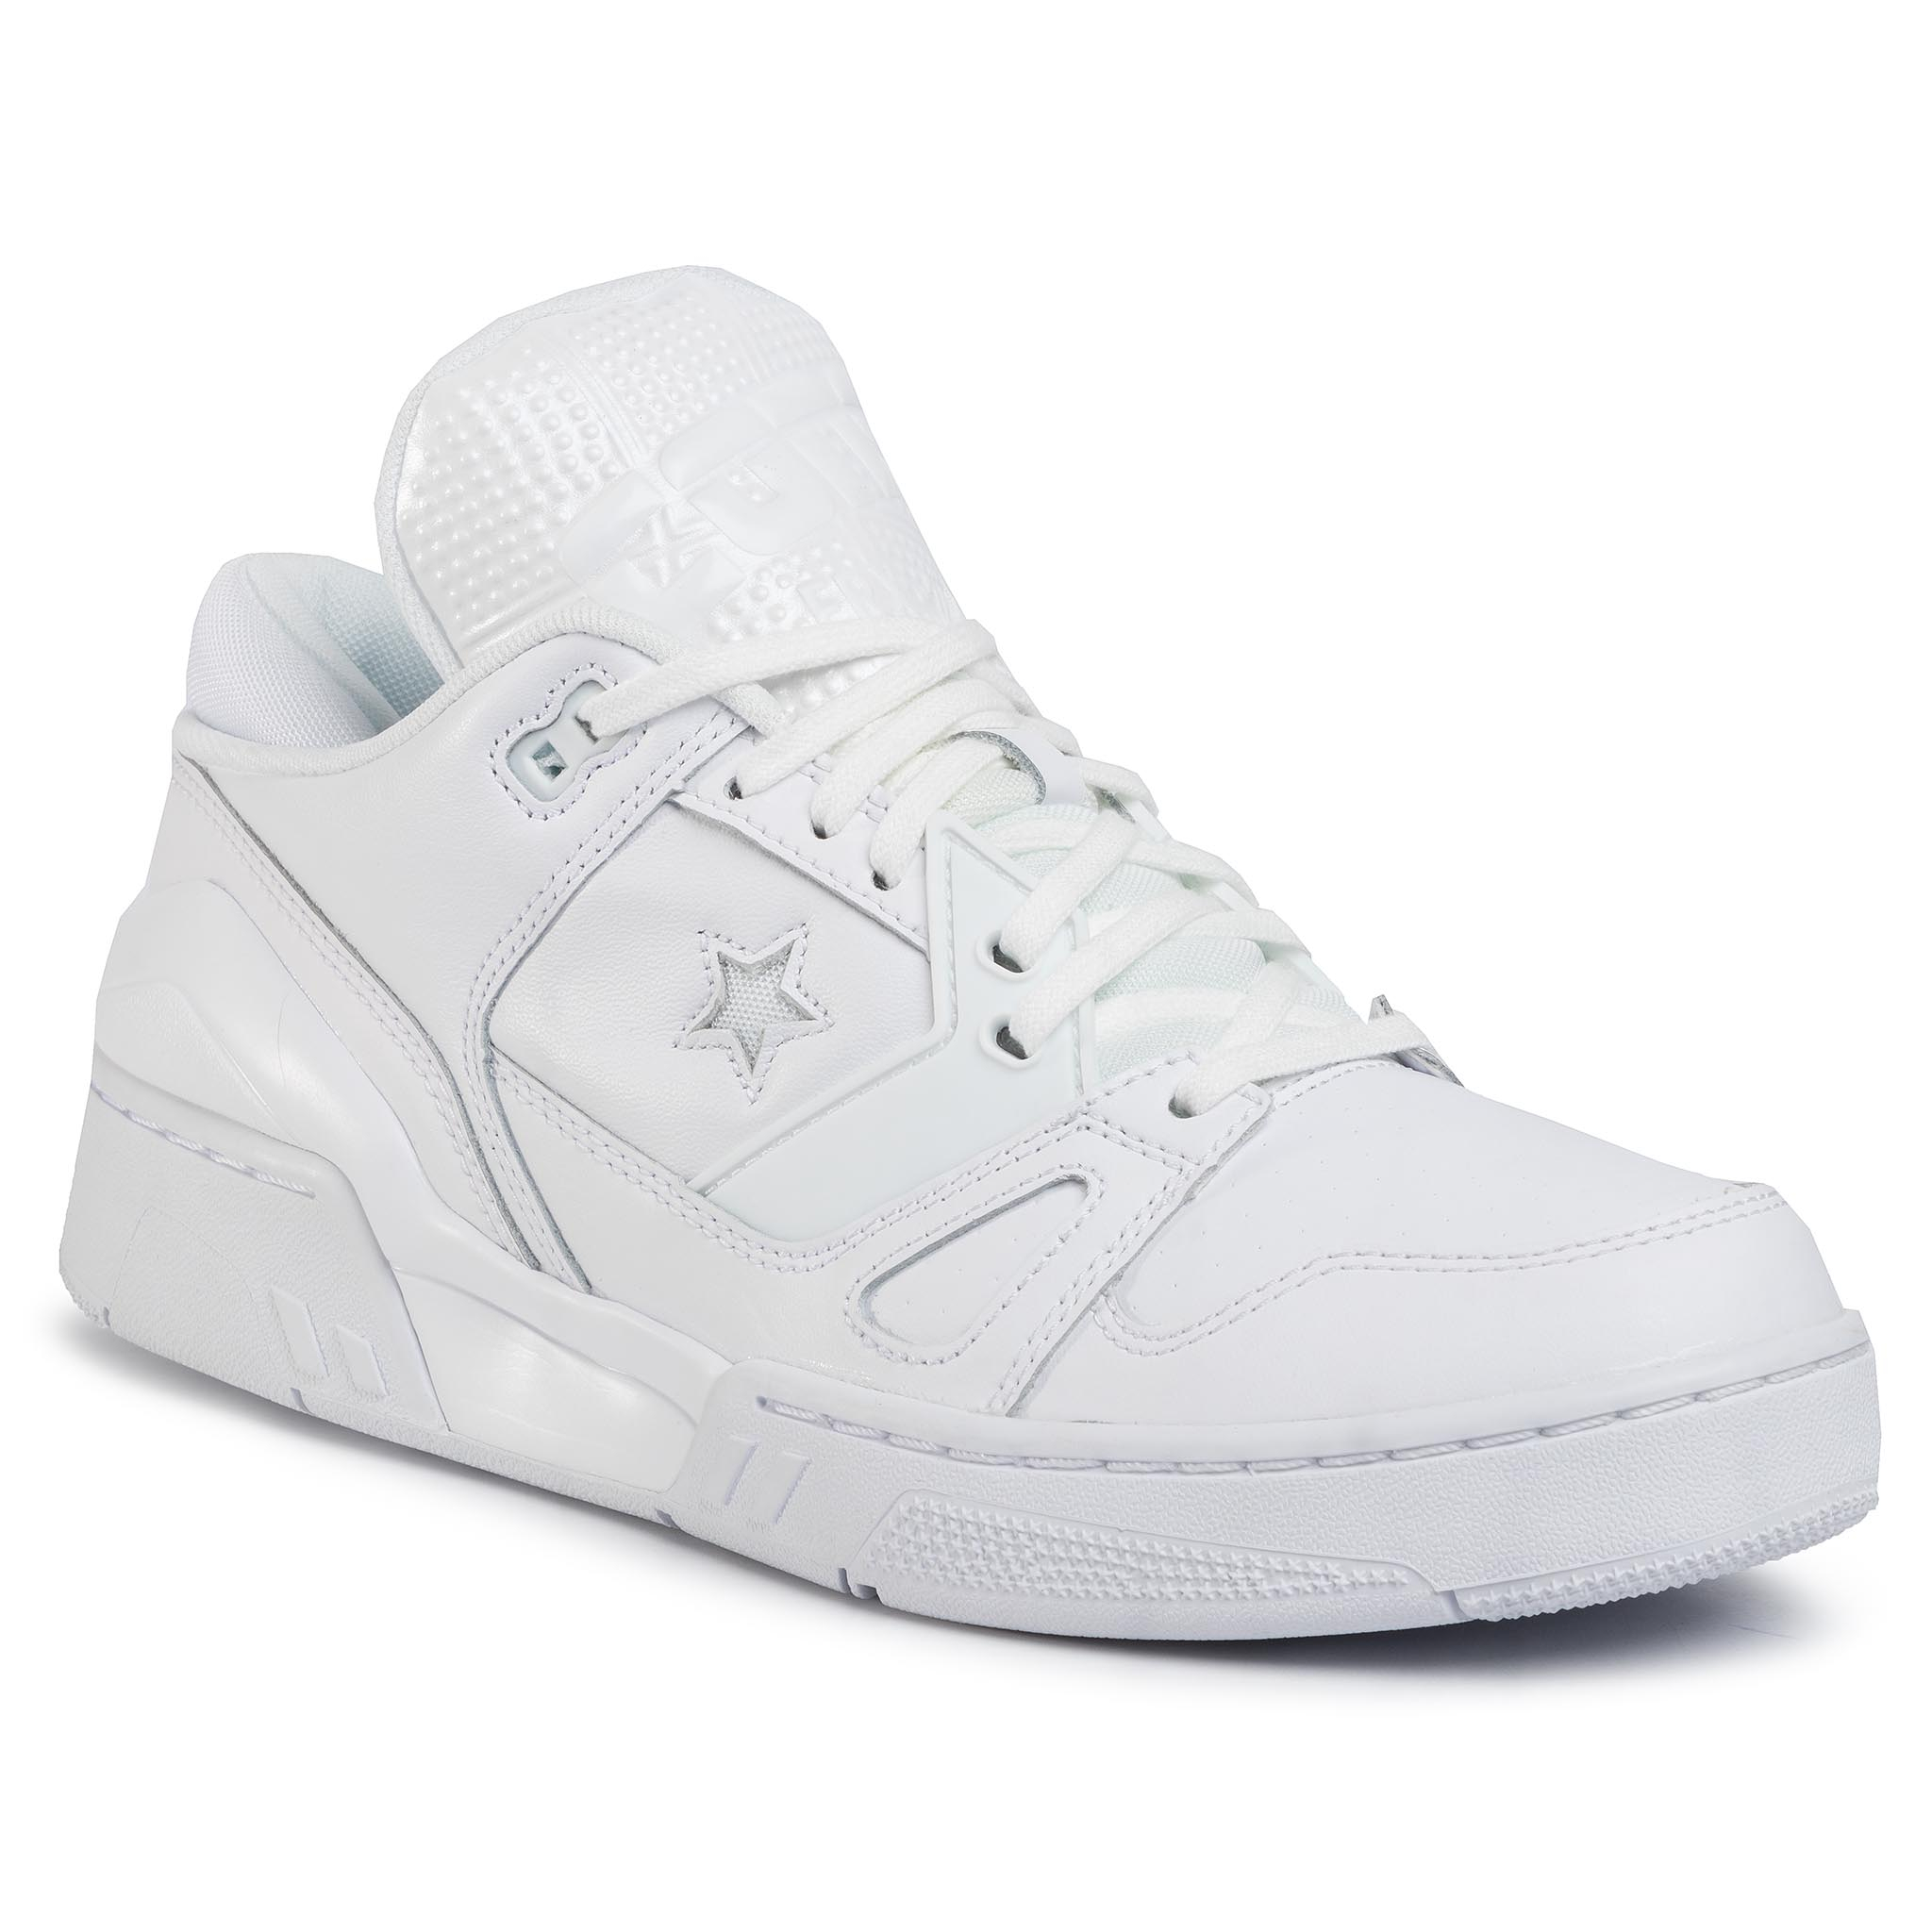 Sneakers Converse - Erx 260 Ox 165044c White/Wolf Grey/White imagine